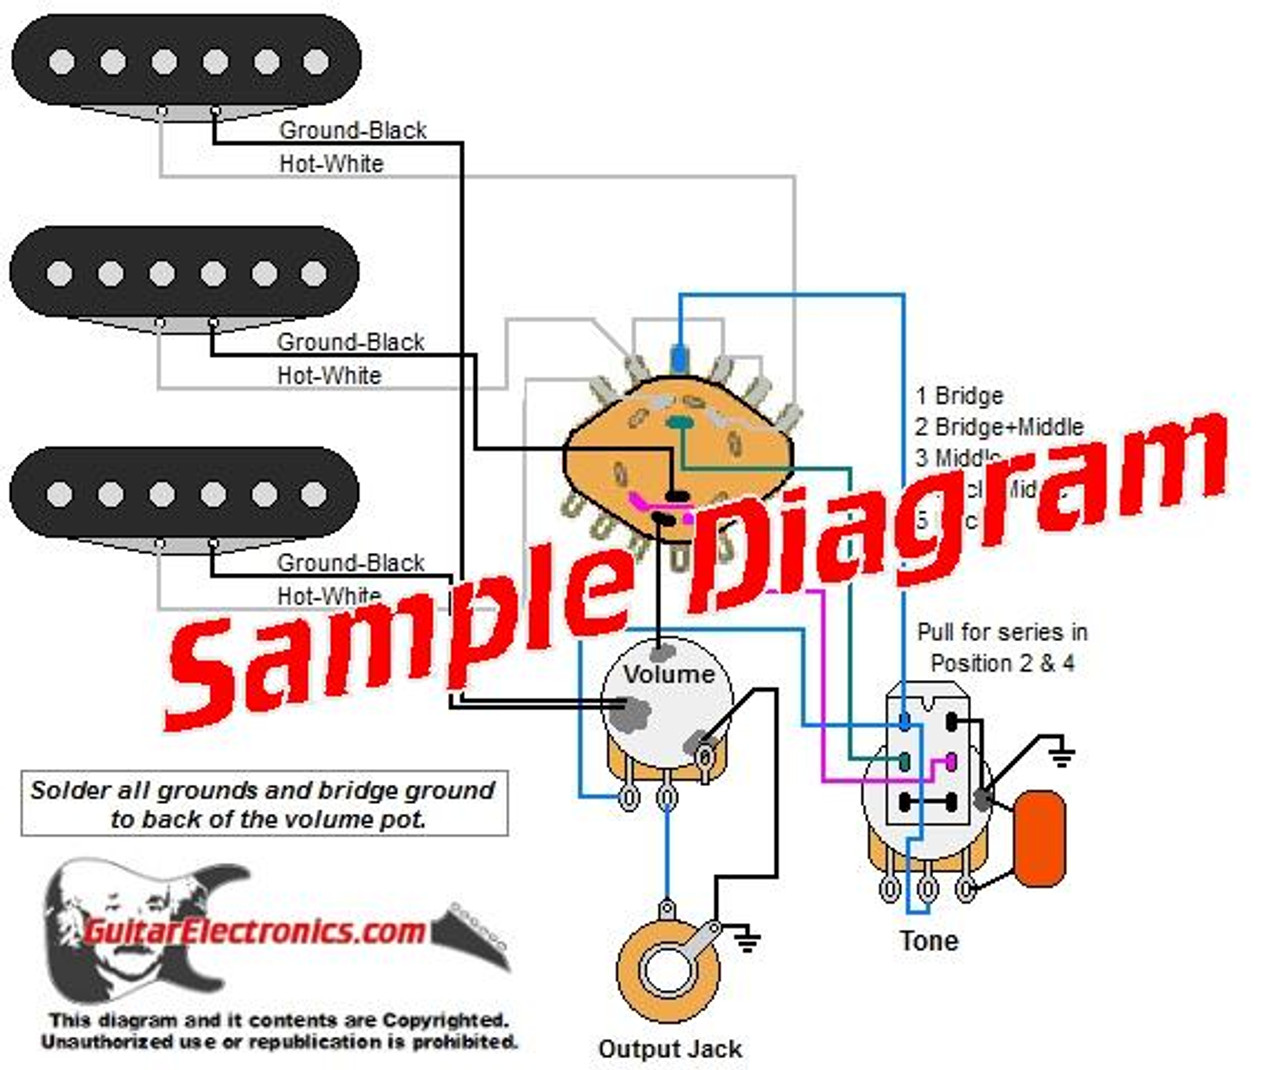 3_Pickup_Sample_Custom_Diagram_1__25100.1491772133 Railhammer Pickup Wiring Diagram on guitar two, sidewinder bass, seymour duncan rail, for bartolini rickenbacker, 2 humbucker 1 single coil guitar, for bartolini 6rc,